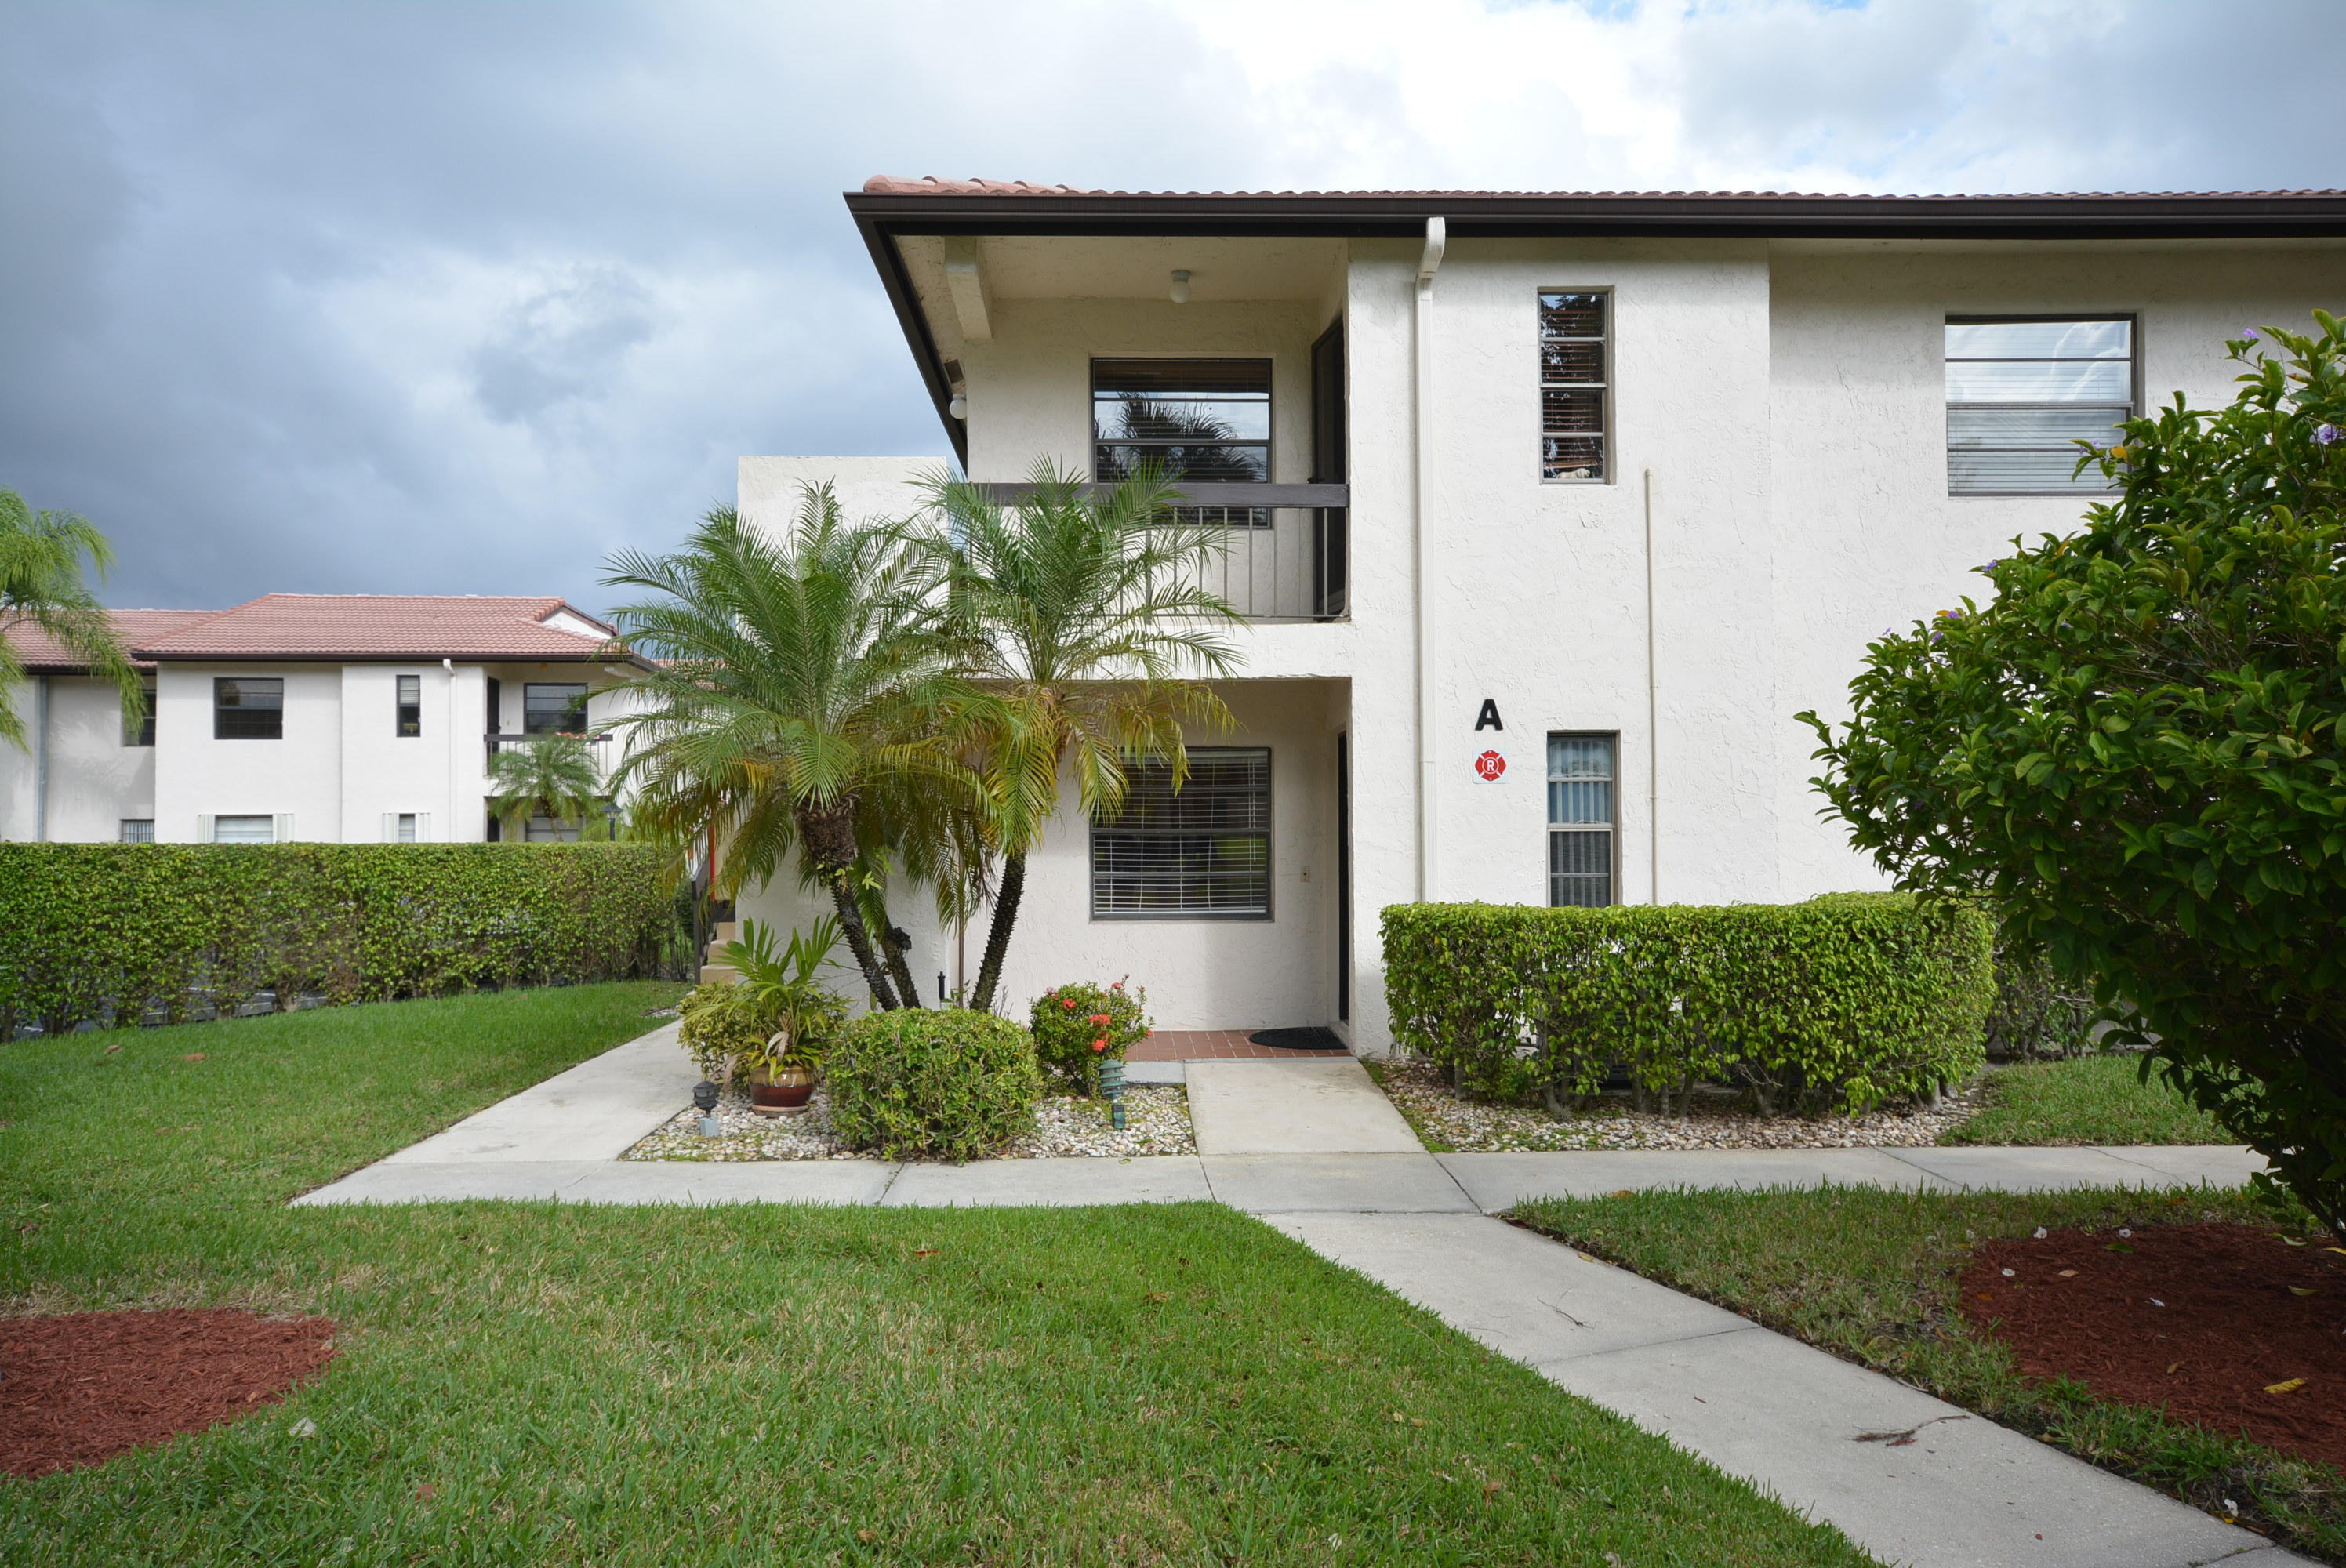 Home for sale in Boca Lago Boca Raton Florida